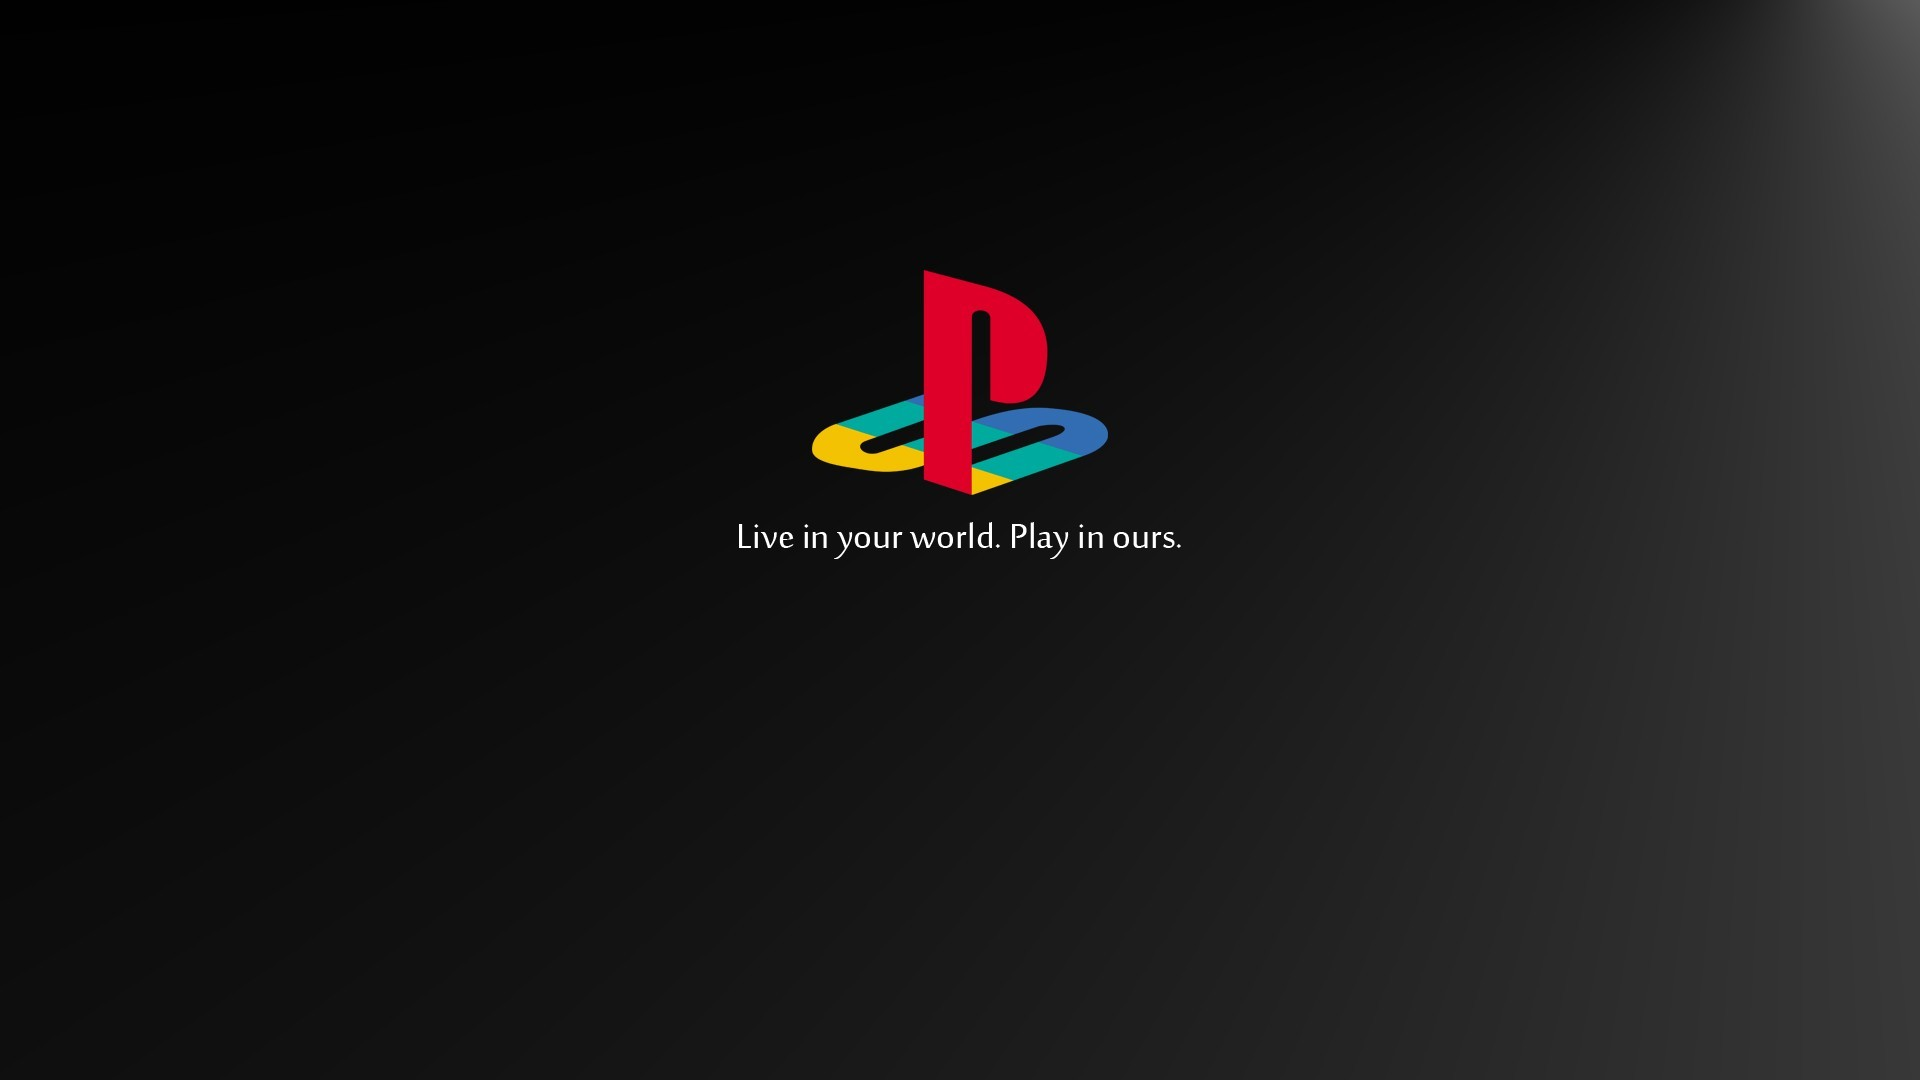 PlayStation Retro Games Video Games Logo Sony Black 1920x1080